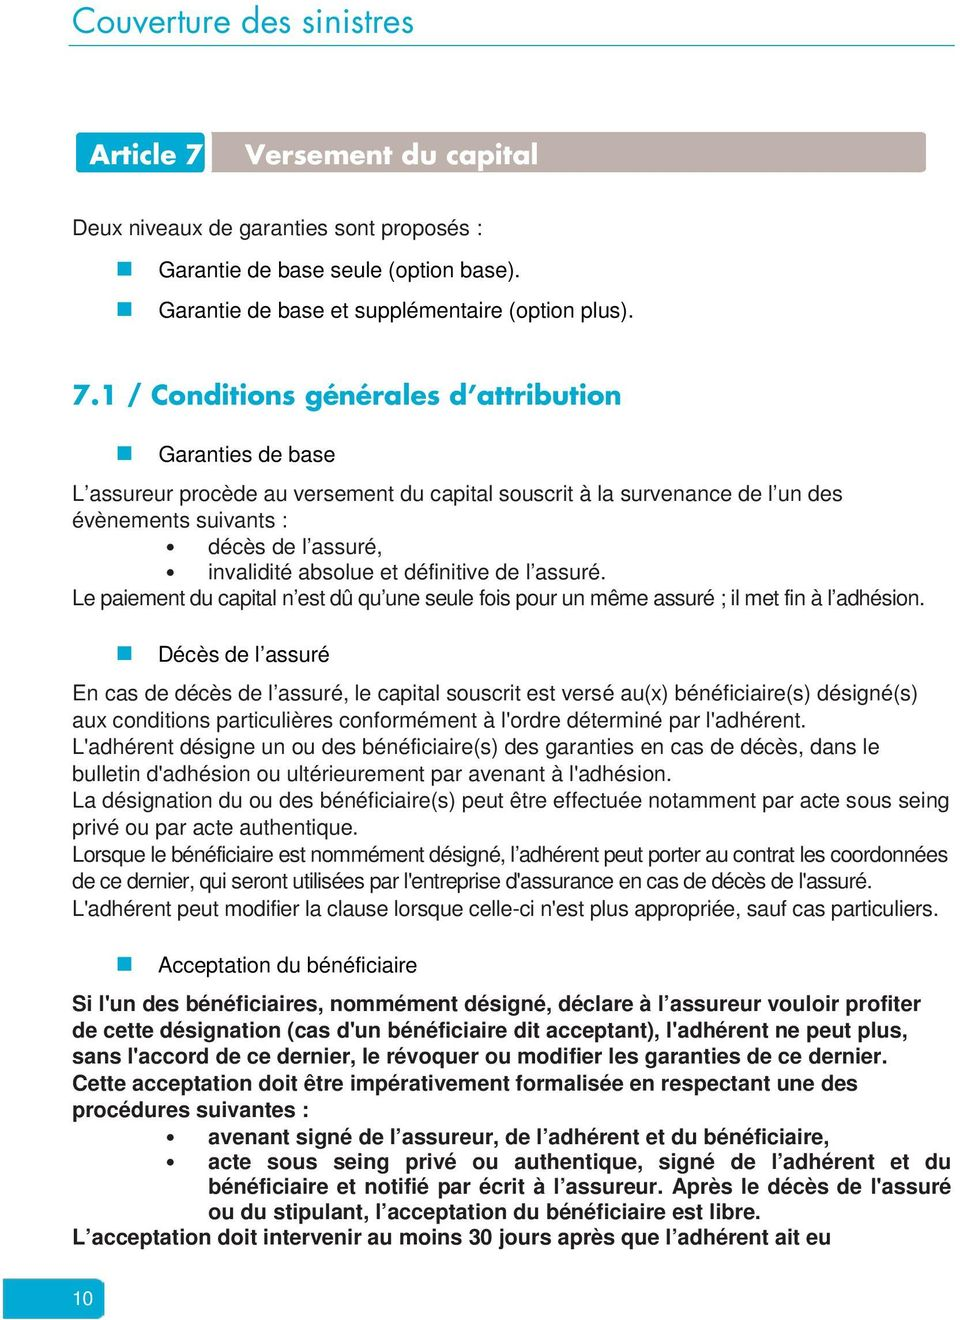 1 / Conditions générales d attribution Garanties de base L assureur procède au versement du capital souscrit à la survenance de l un des évènements suivants : décès de l assuré, invalidité absolue et